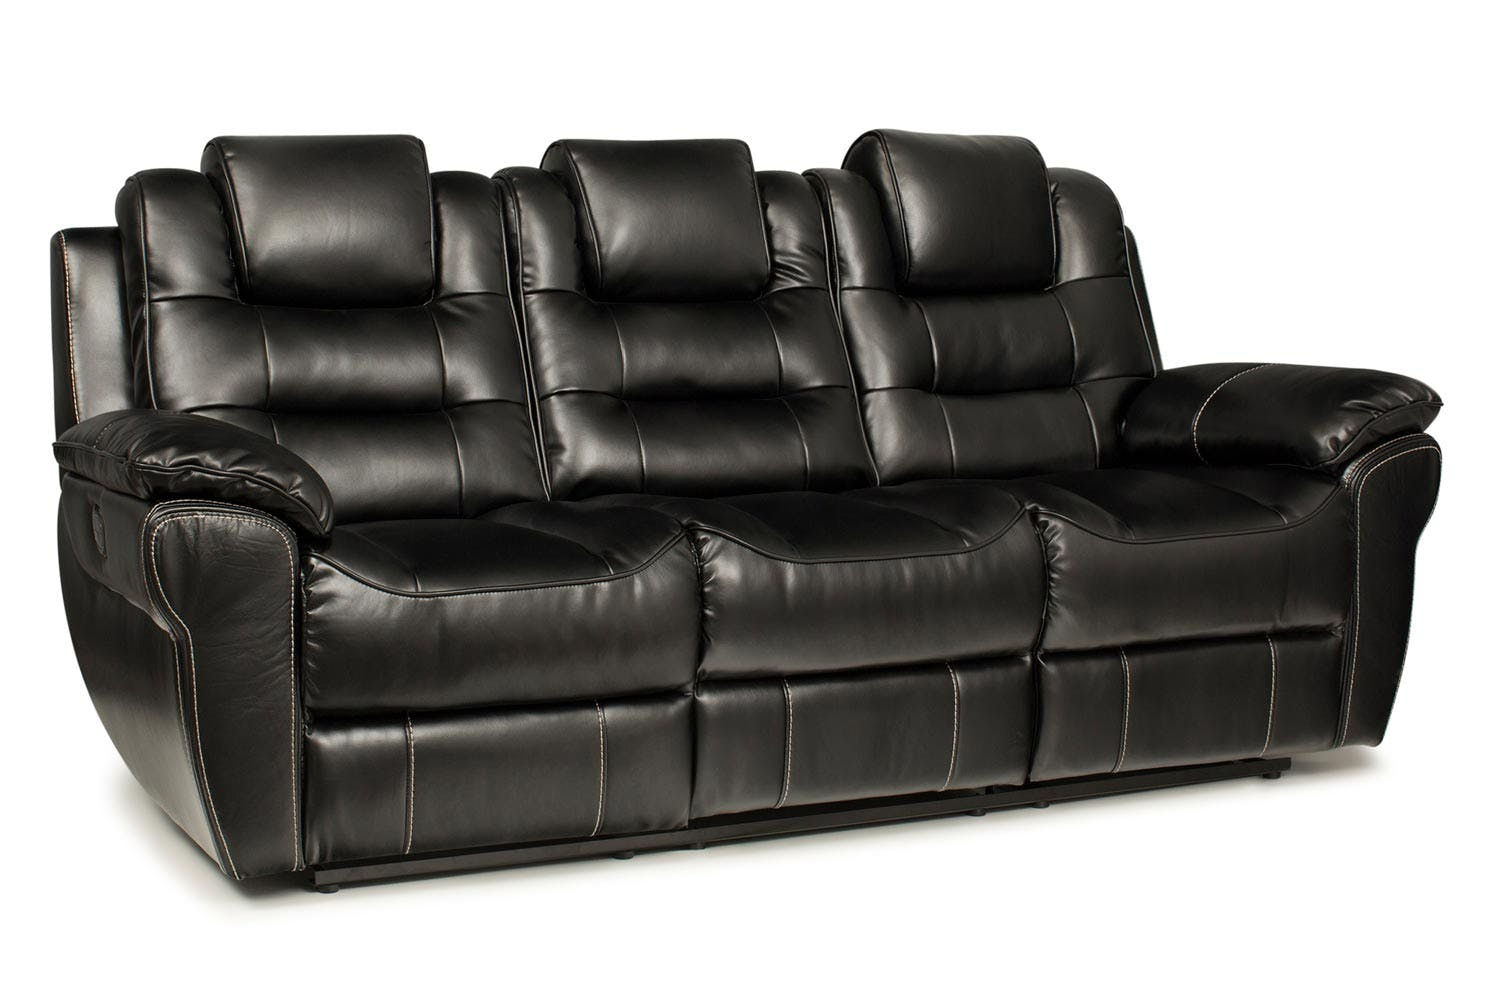 Baxter 3 Seater Twin Electric Recliner